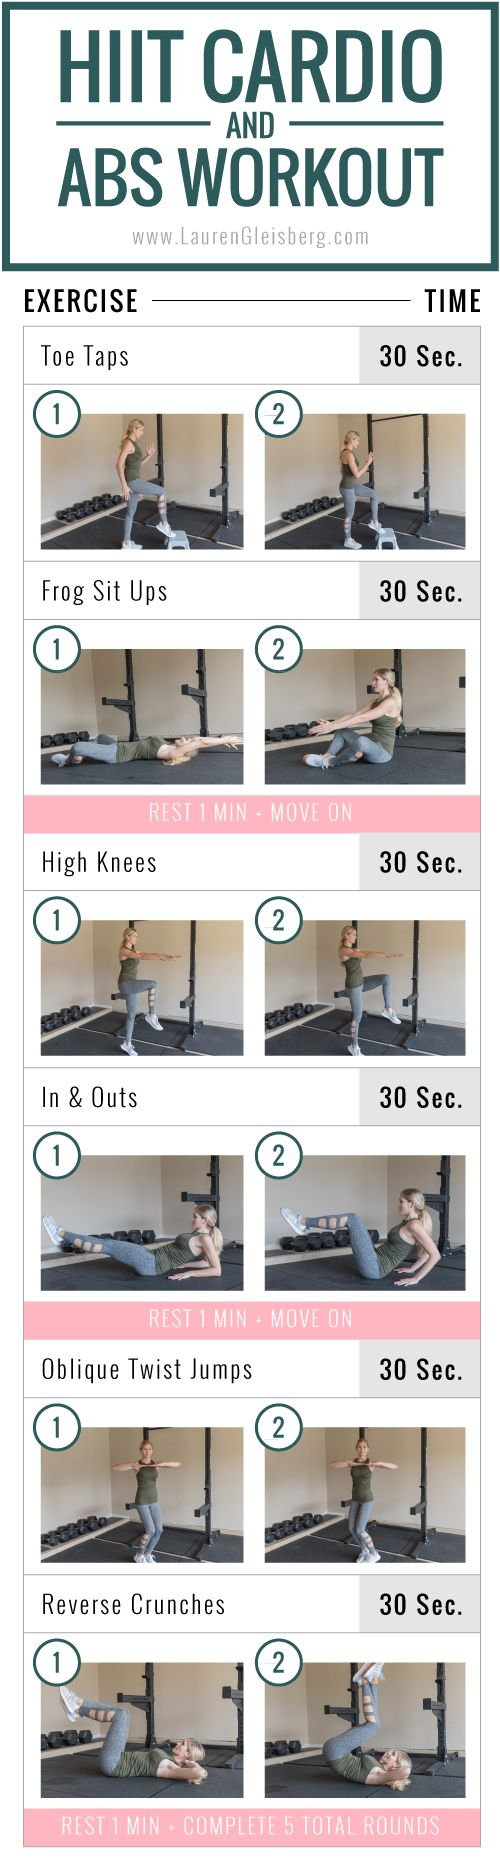 Happy Thanksgiving! Here is a quick yet intense HIIT cardio and ab workout that you don't need any equipment to complete. I thought it would be perfect to squeeze in today no matter if you're home or